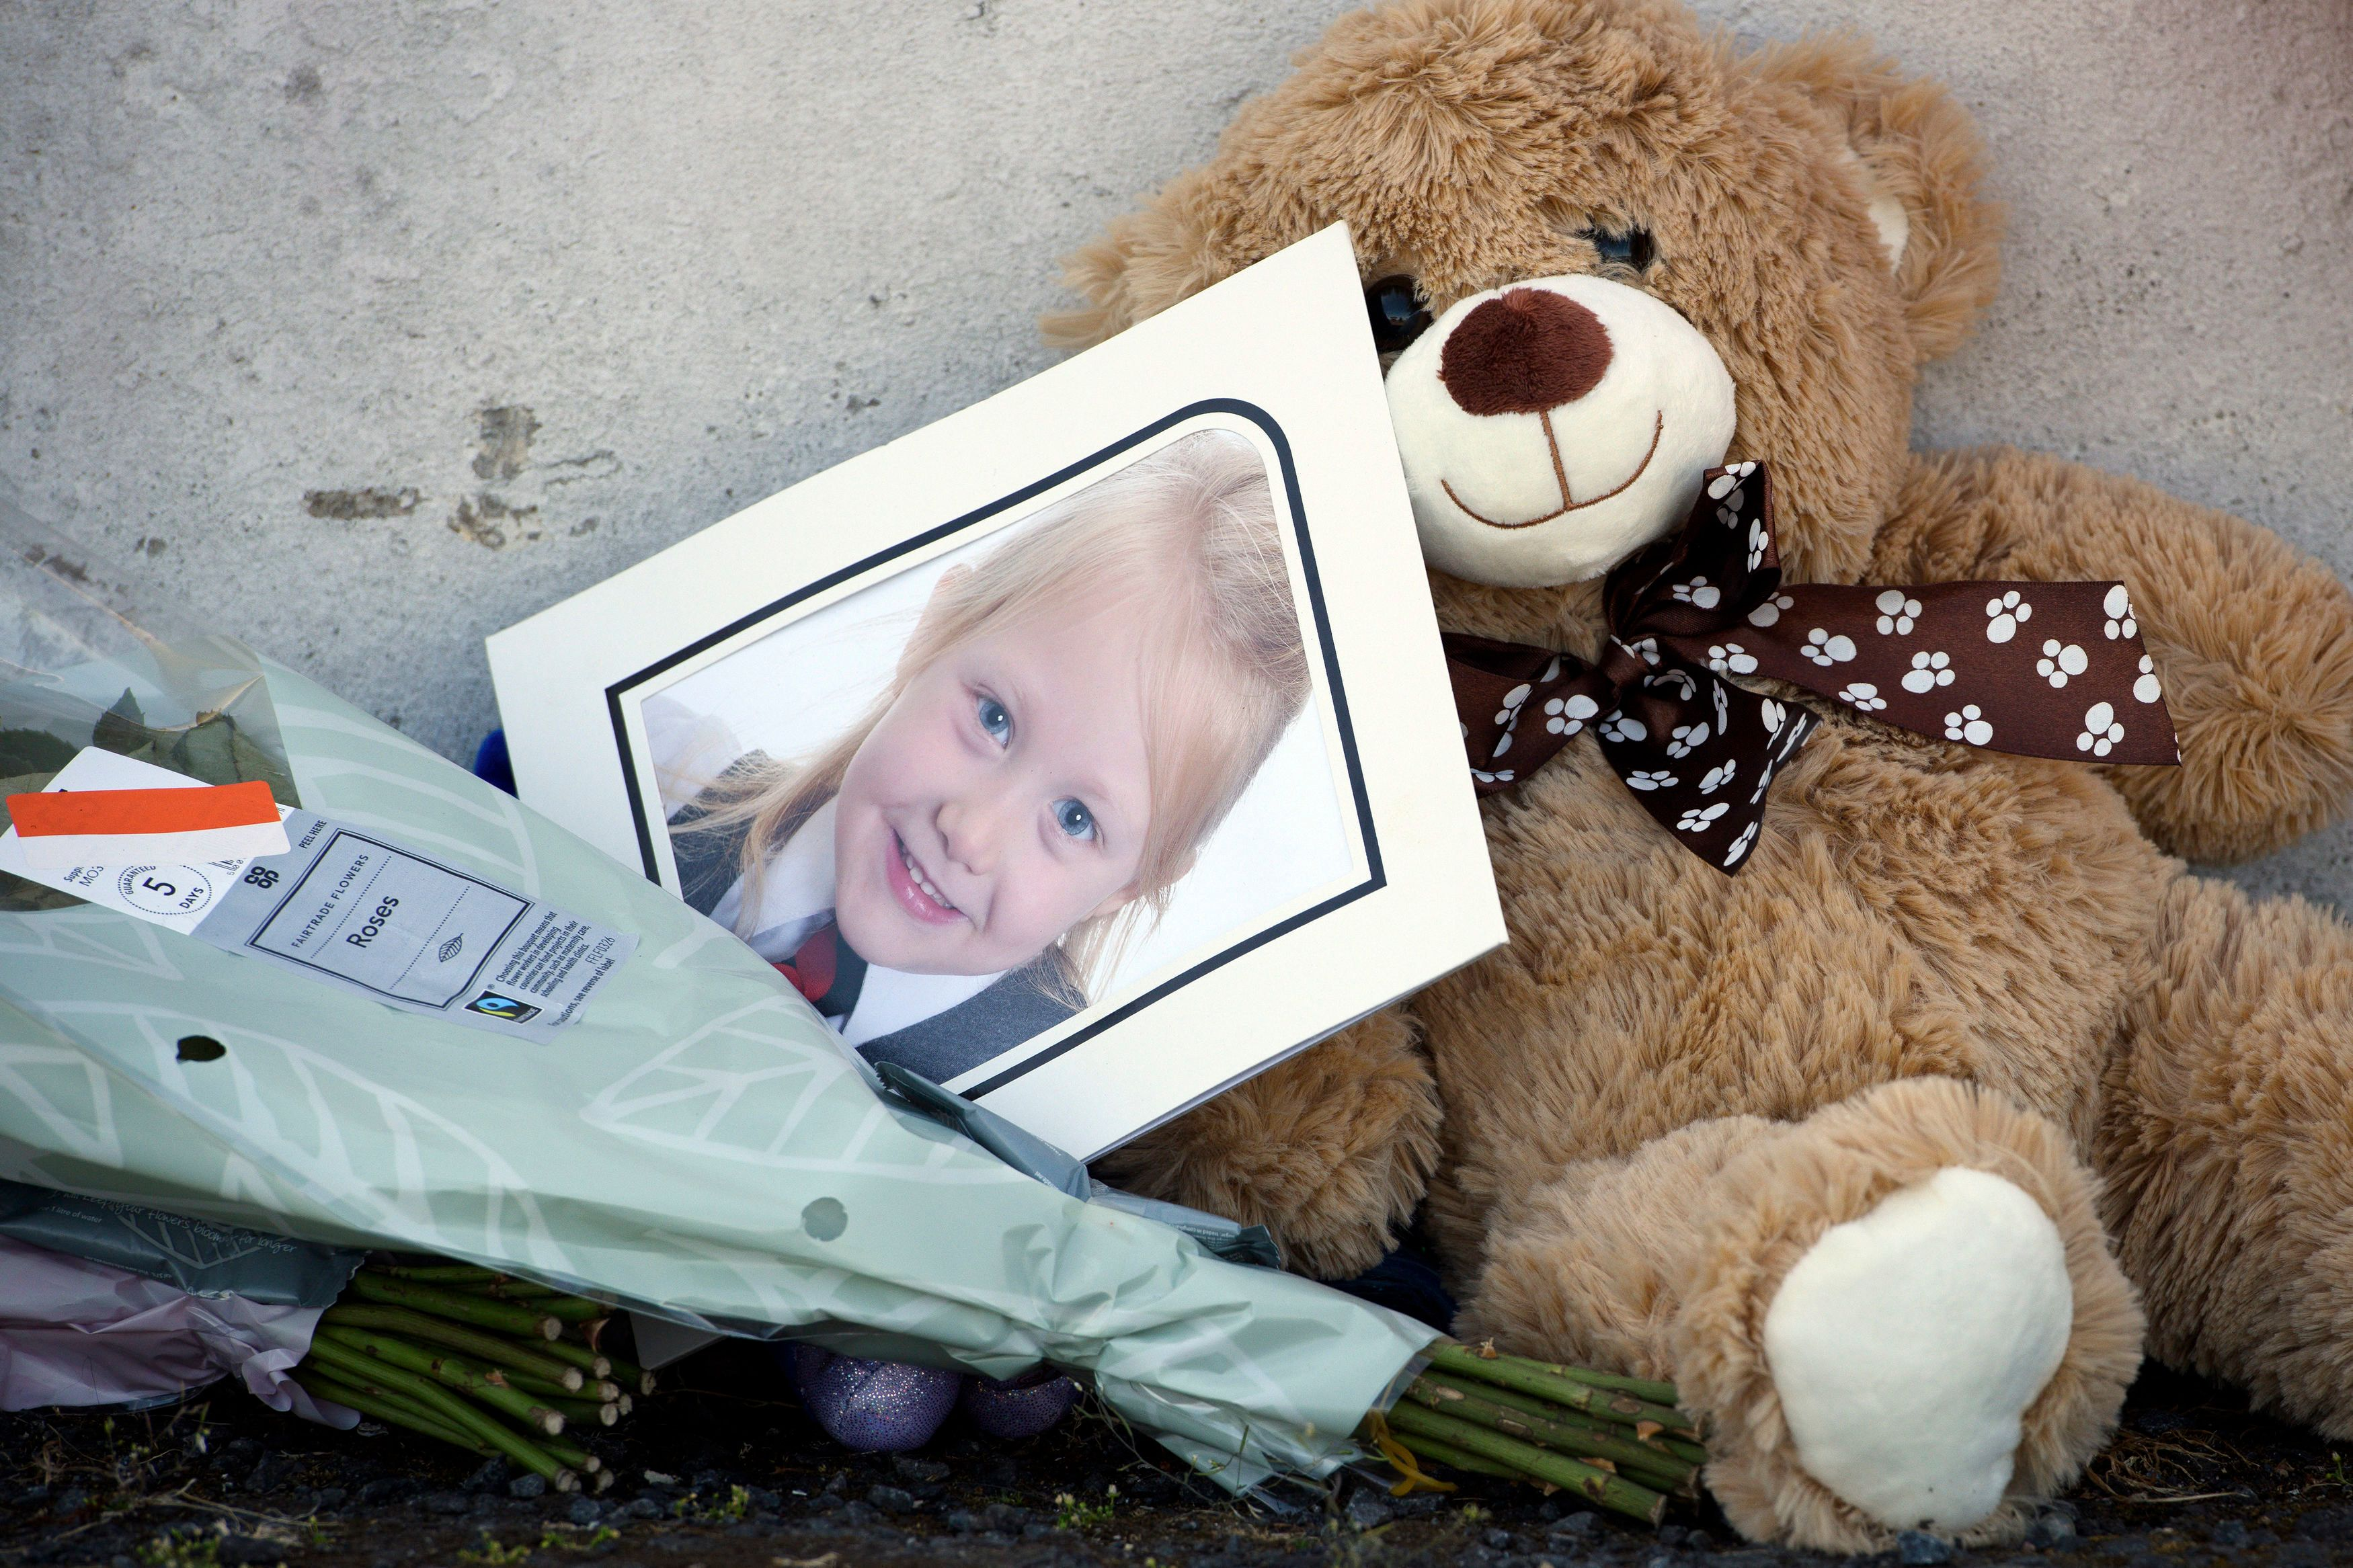 Boy, 16, Charged With The Rape And Murder Of Six-Year-Old Alesha MacPhail